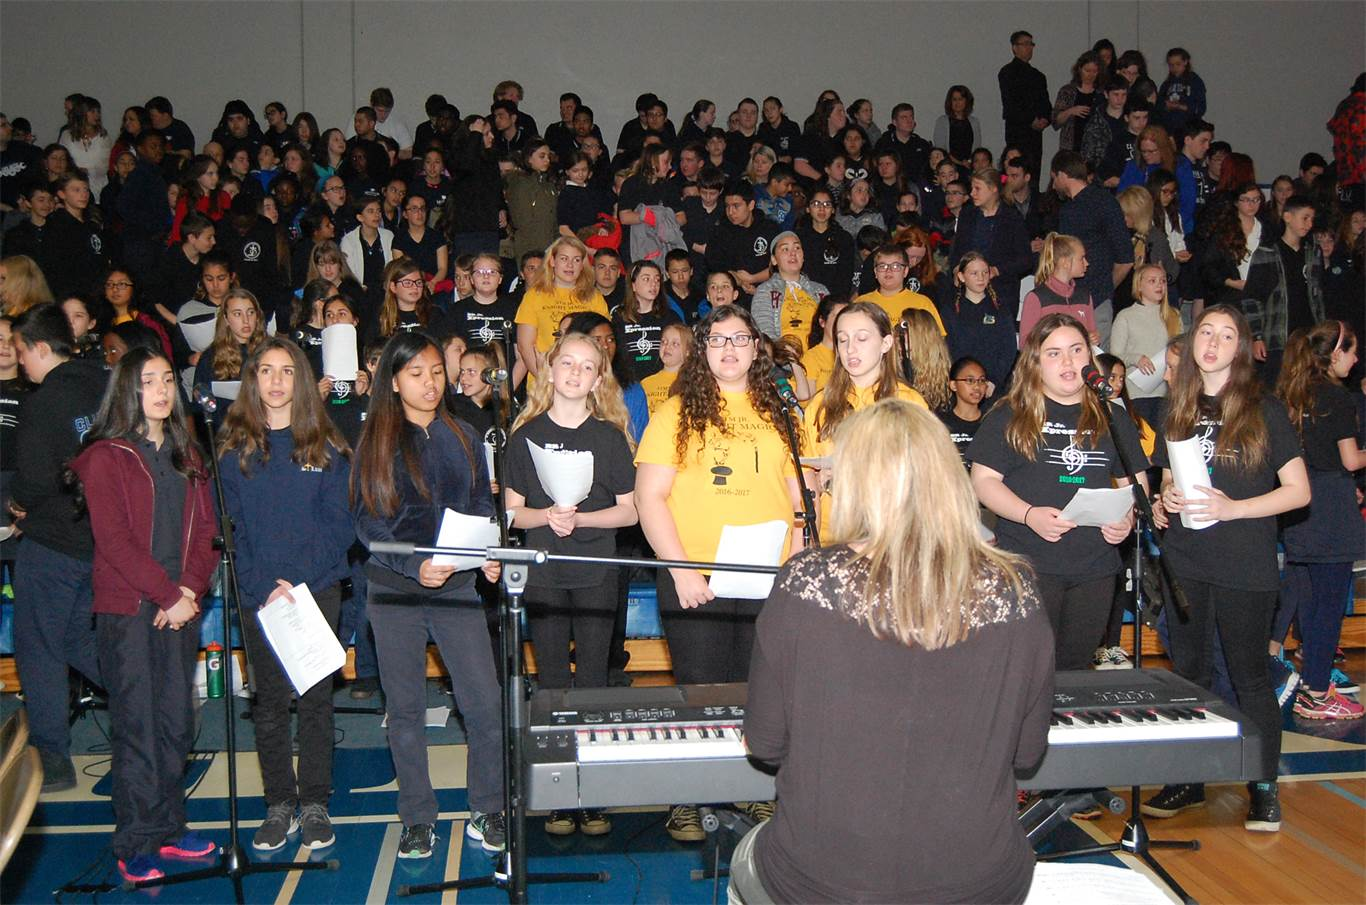 Music ministry provided by the St. Thomas More Junior Knight Magic Choir under the direction of Mary Tabone.